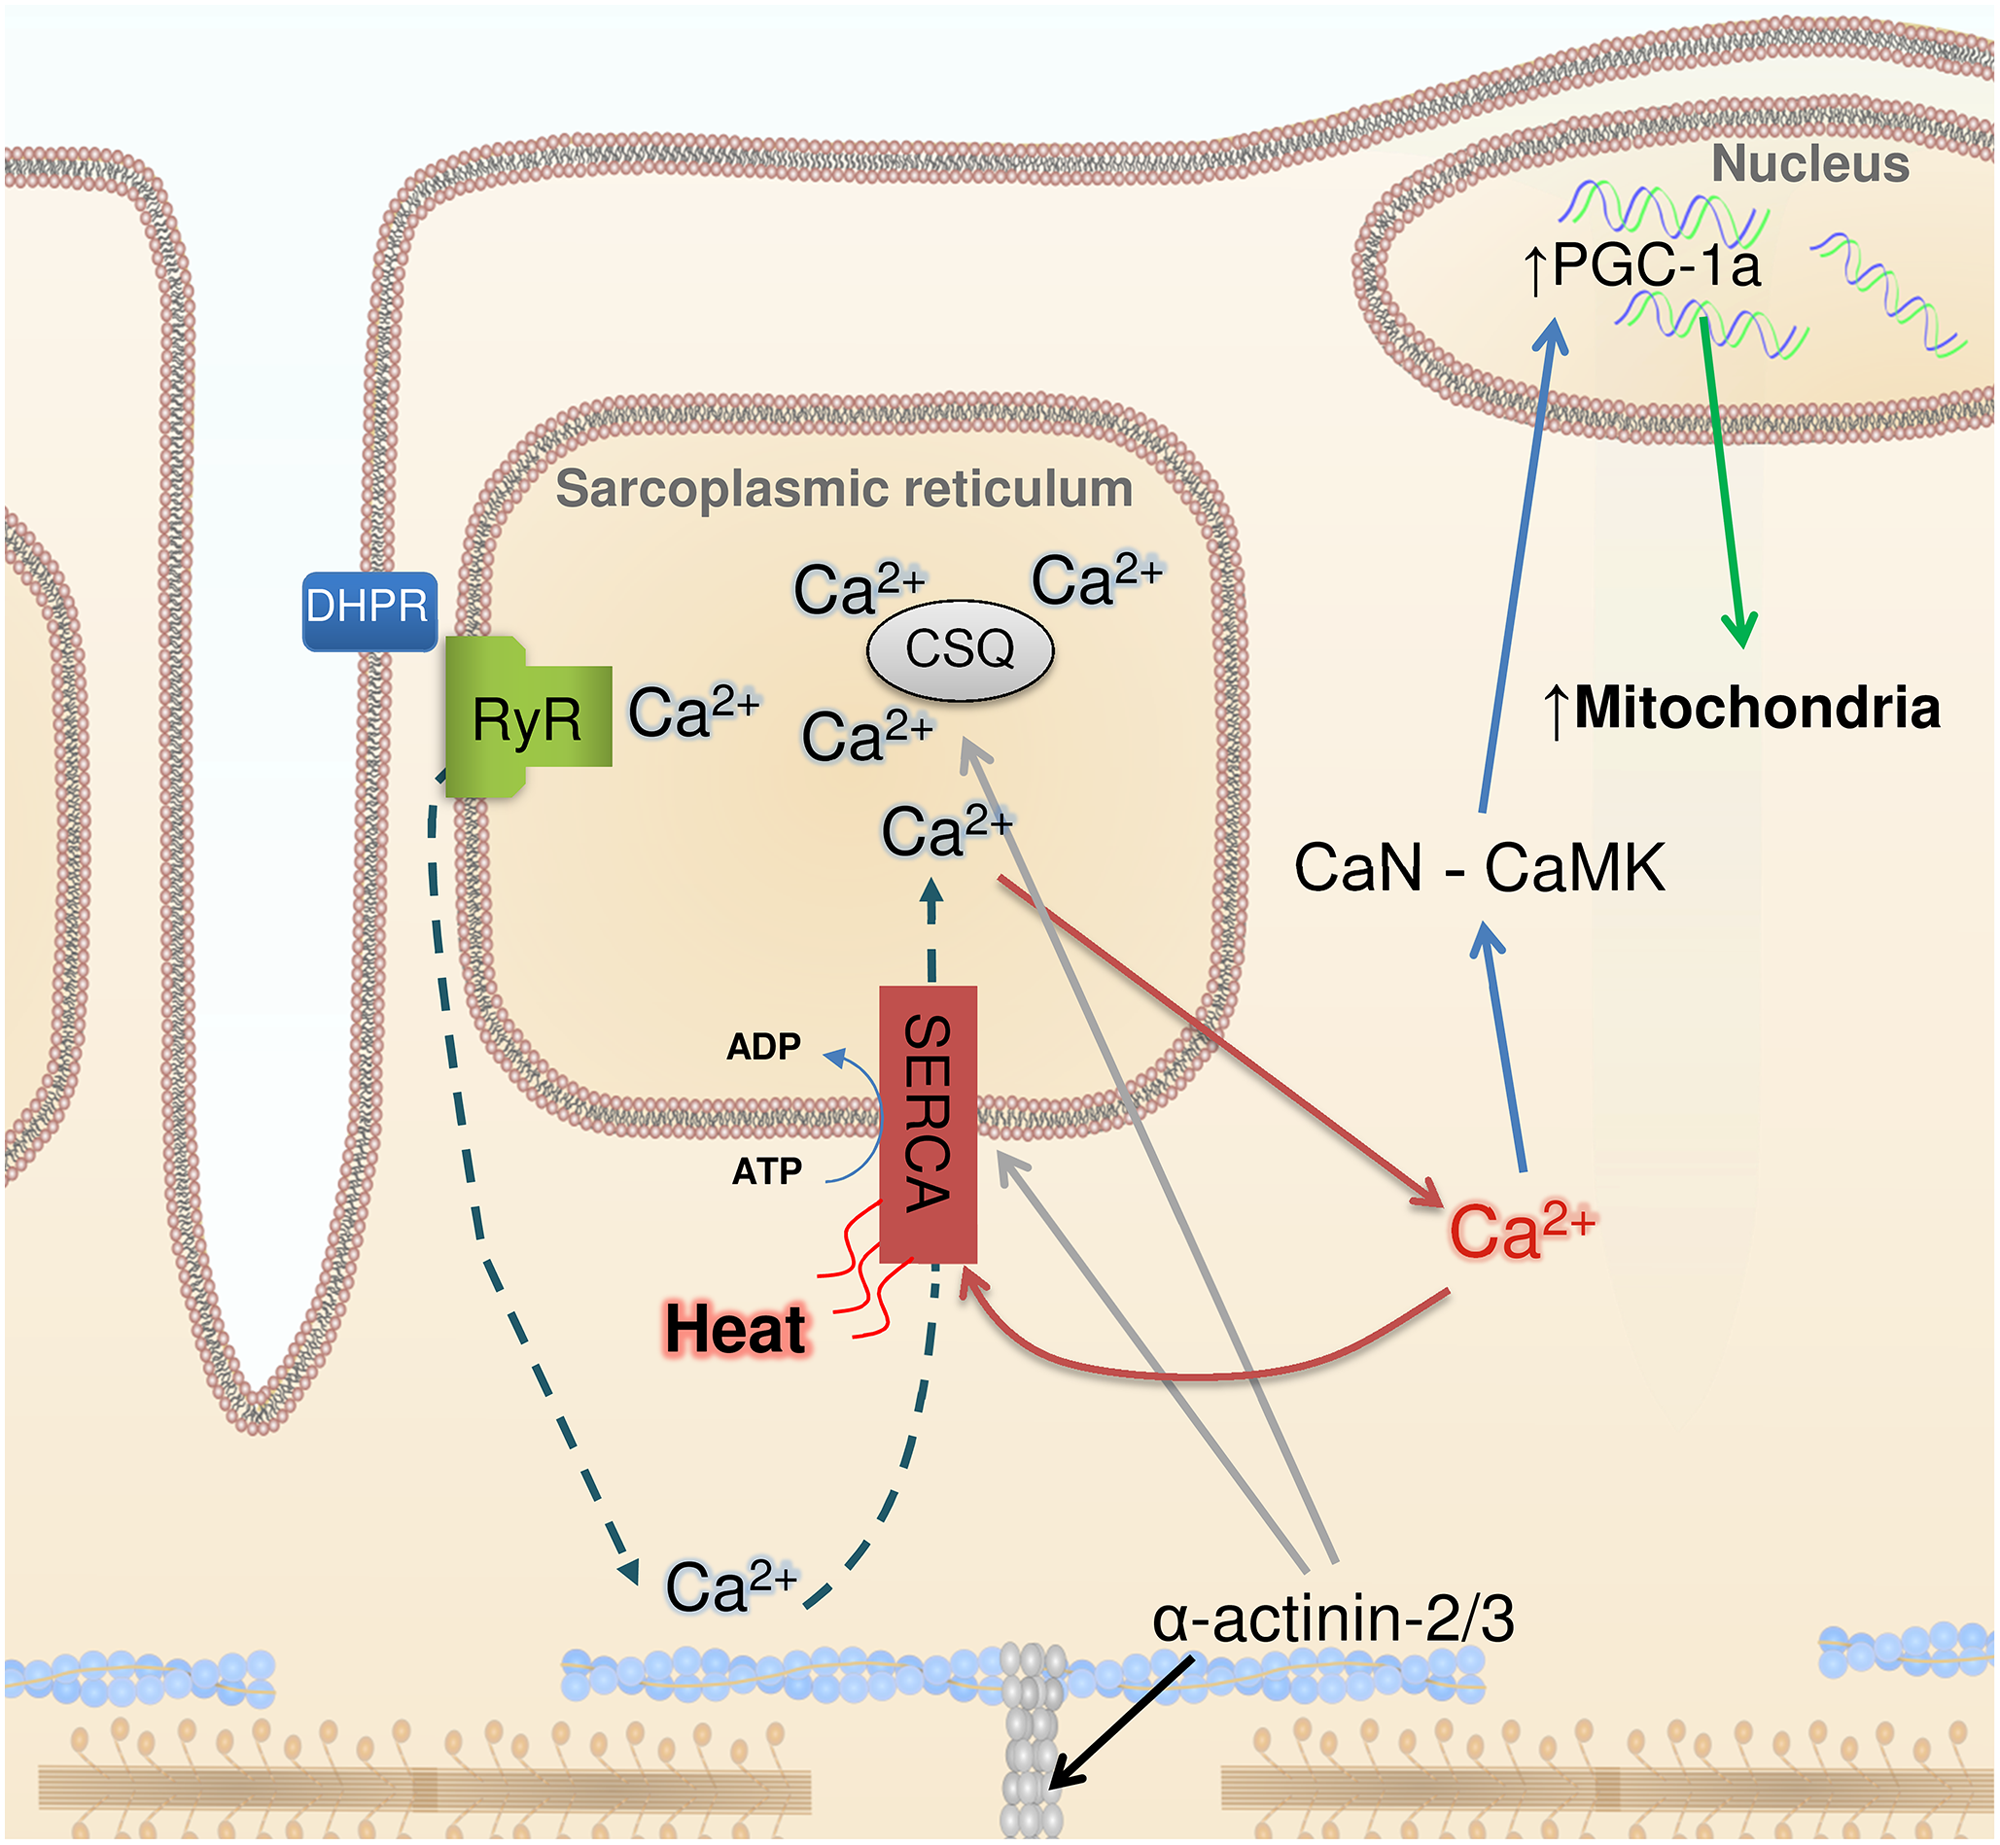 Ca<sup>2+</sup>, heat, and mitochondrial biogenesis.